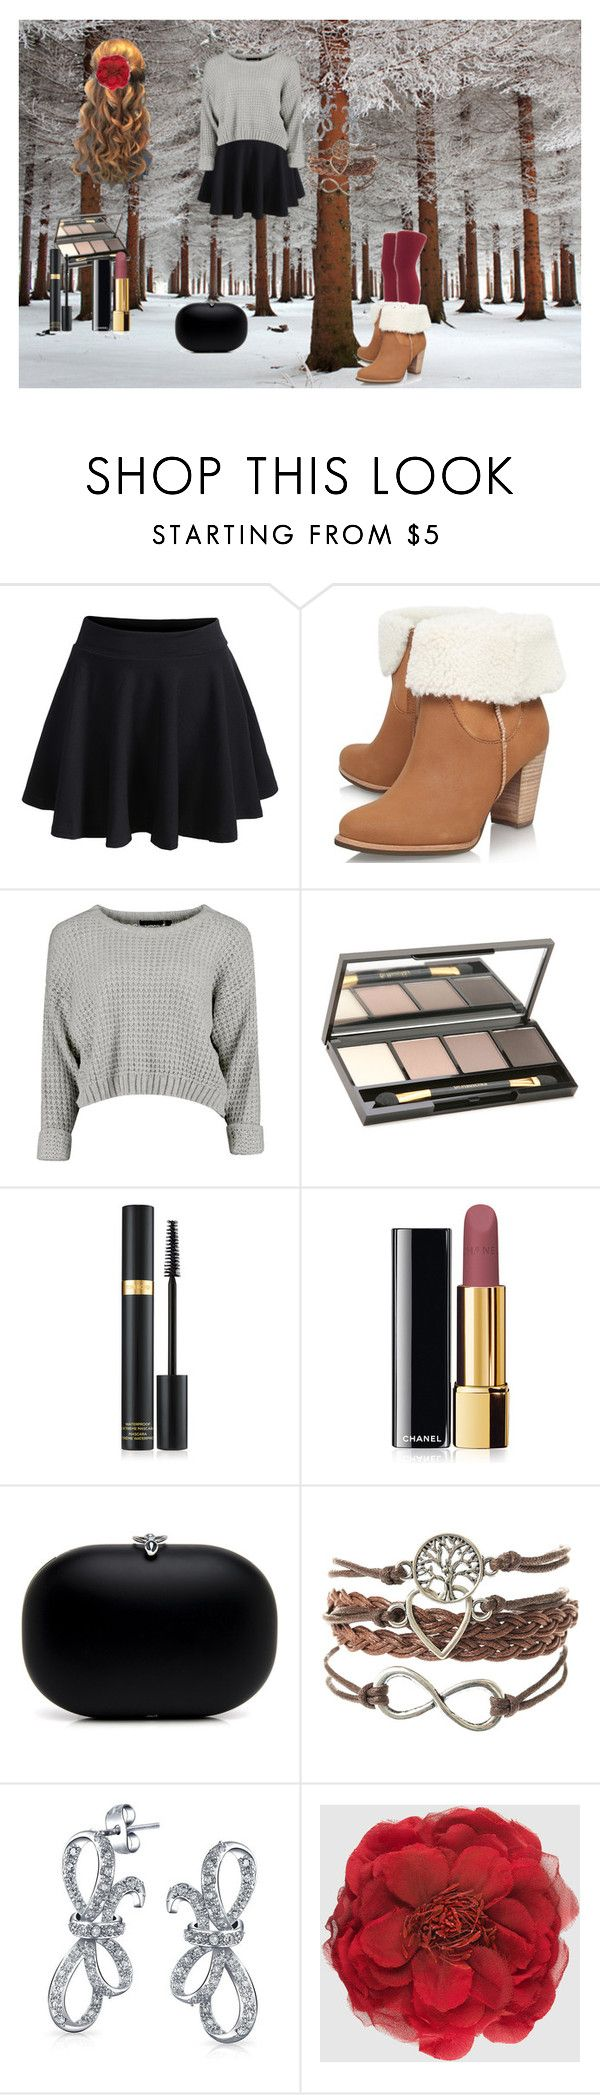 """Fashionable Winter Stroll"" by fashionista-chica-2002 ❤ liked on Polyvore featuring UGG Australia, Dr.Hauschka, Tom Ford, Chanel, Bling Jewelry, Gucci, Winter, cute, maroon and styleicon"